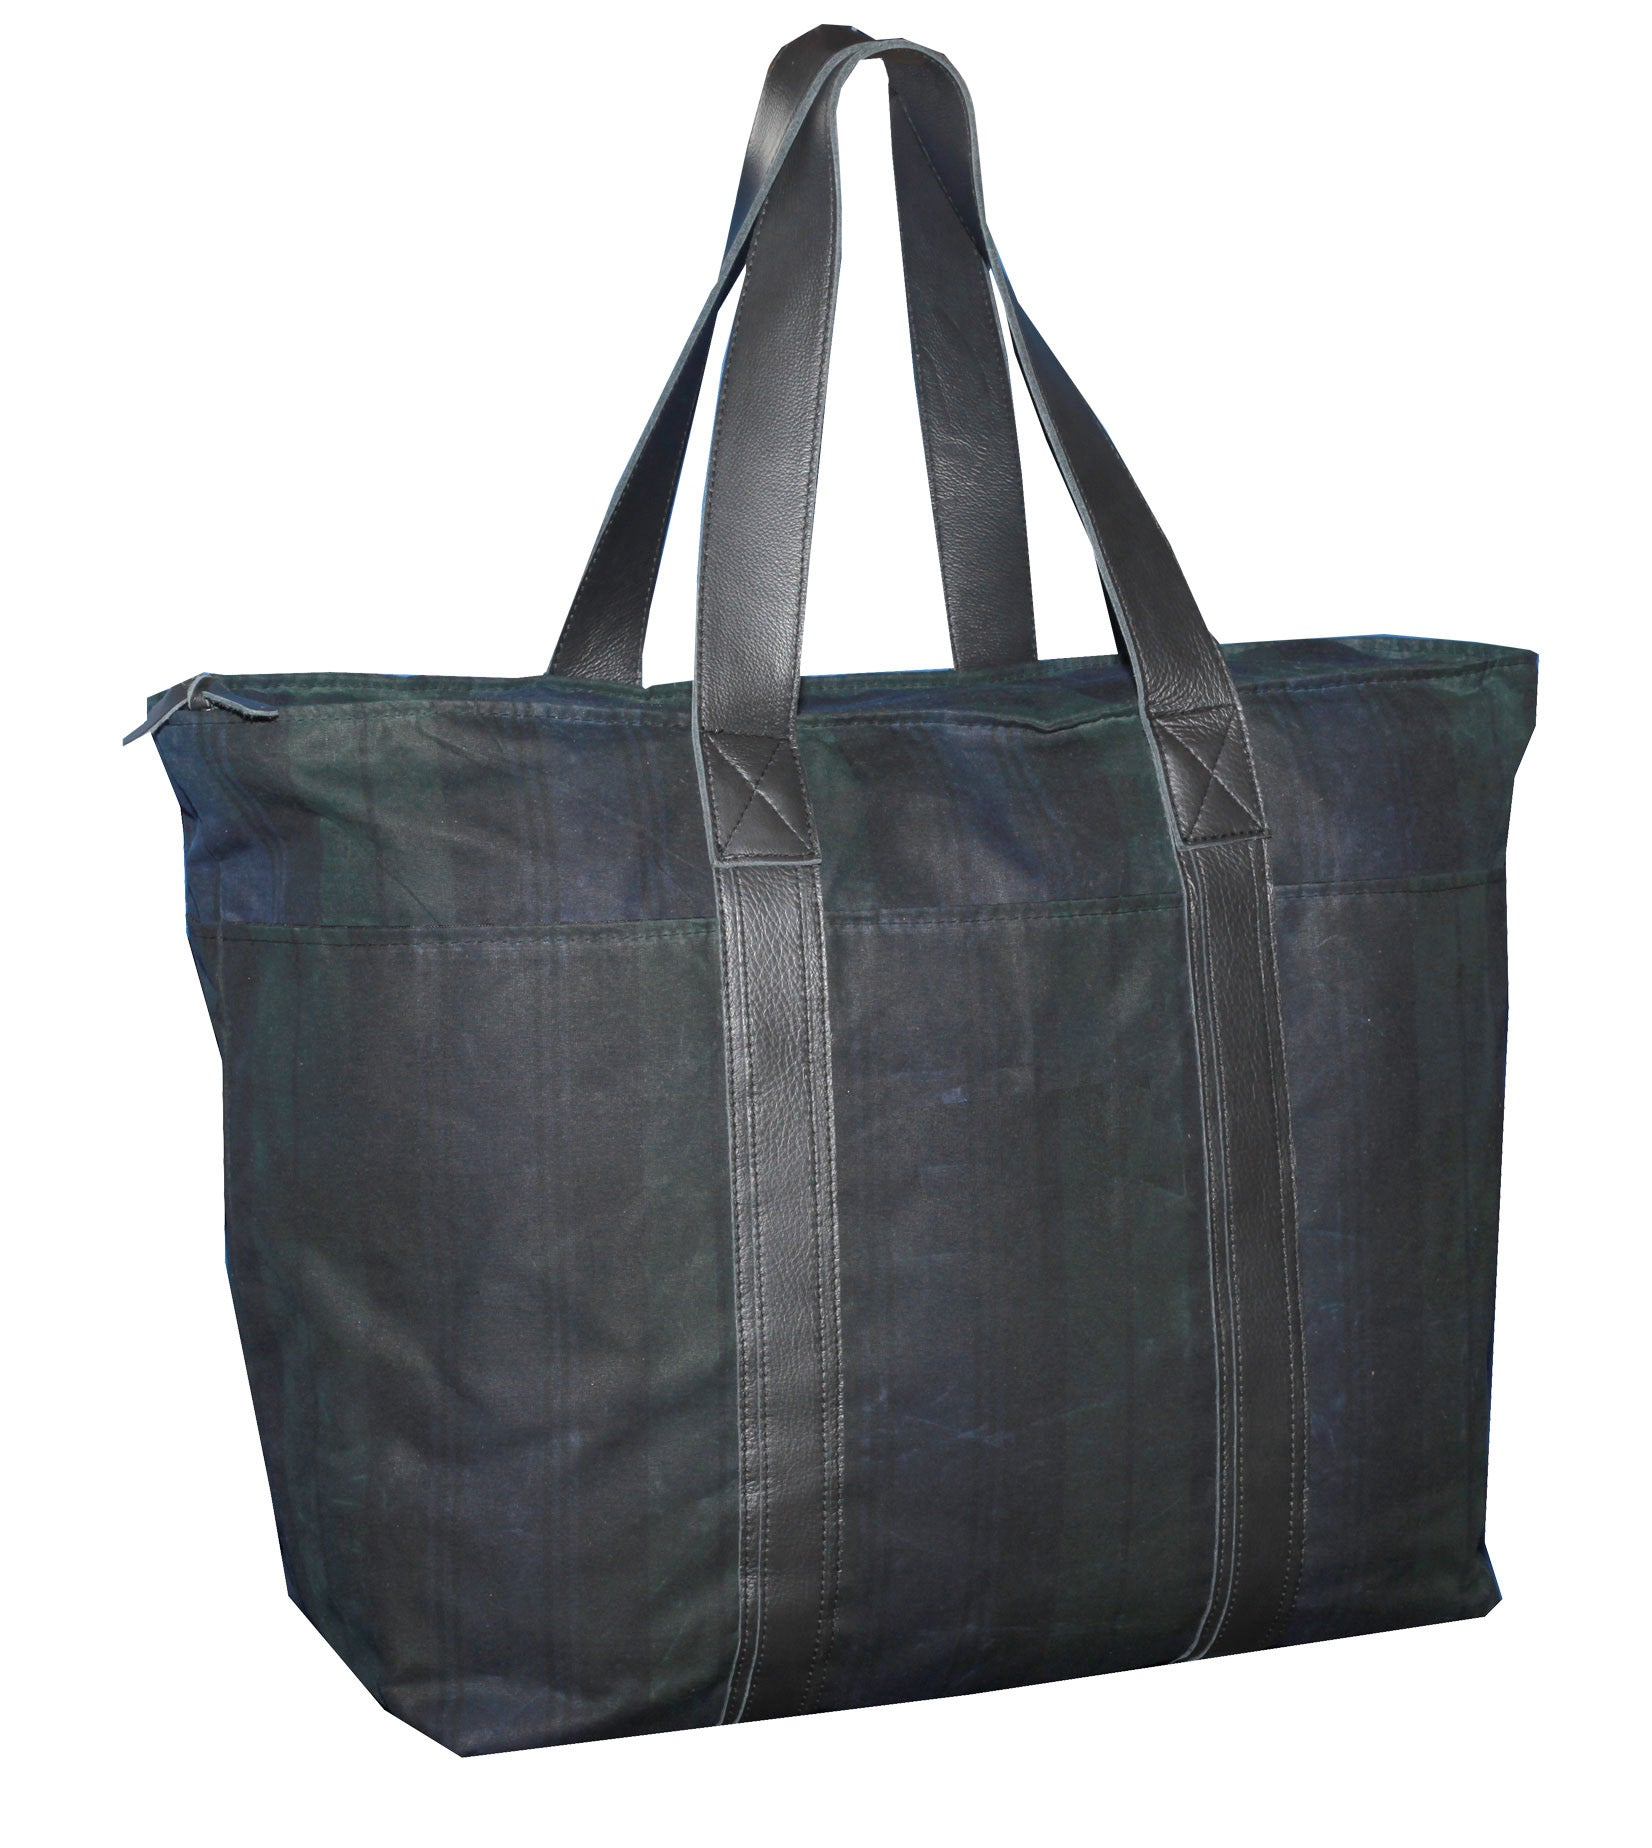 Kensington Tote - Black Watch Plaid